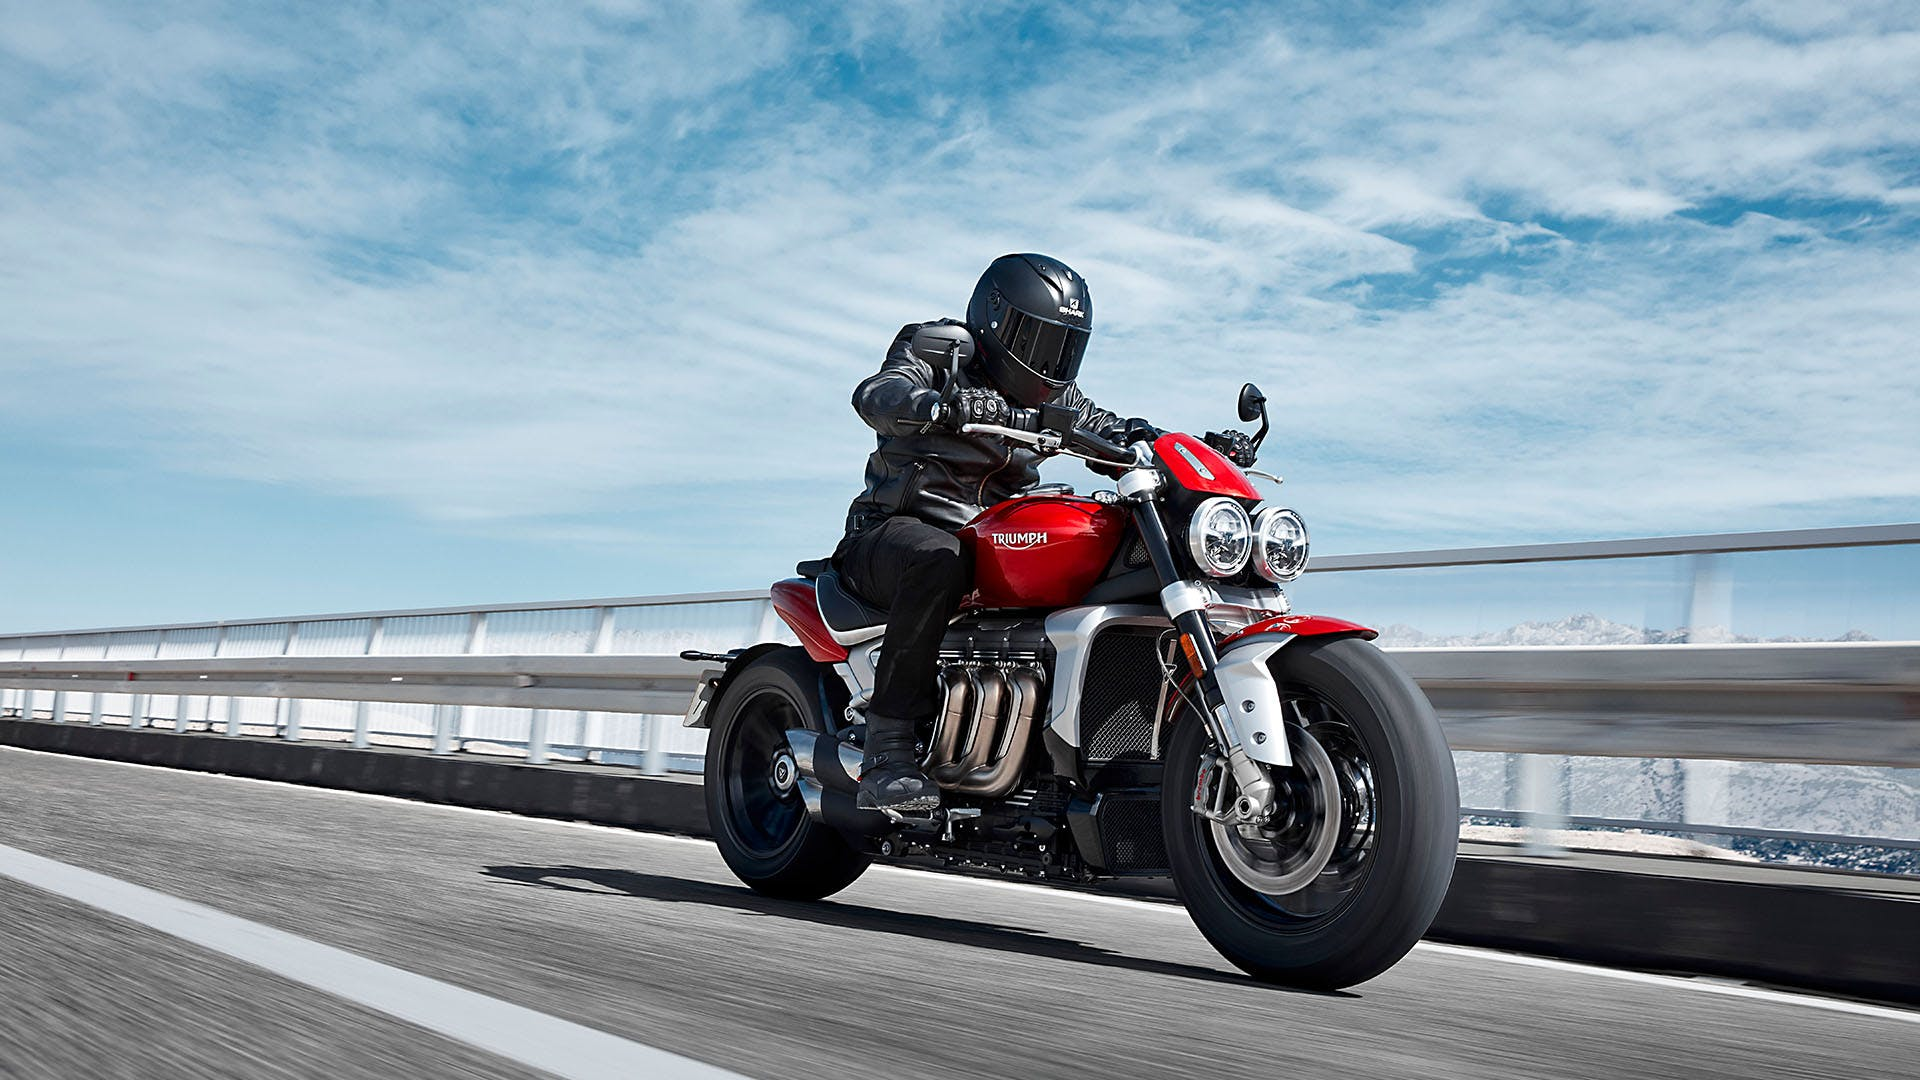 Triumph Rocket 3 R being driven on a highway road